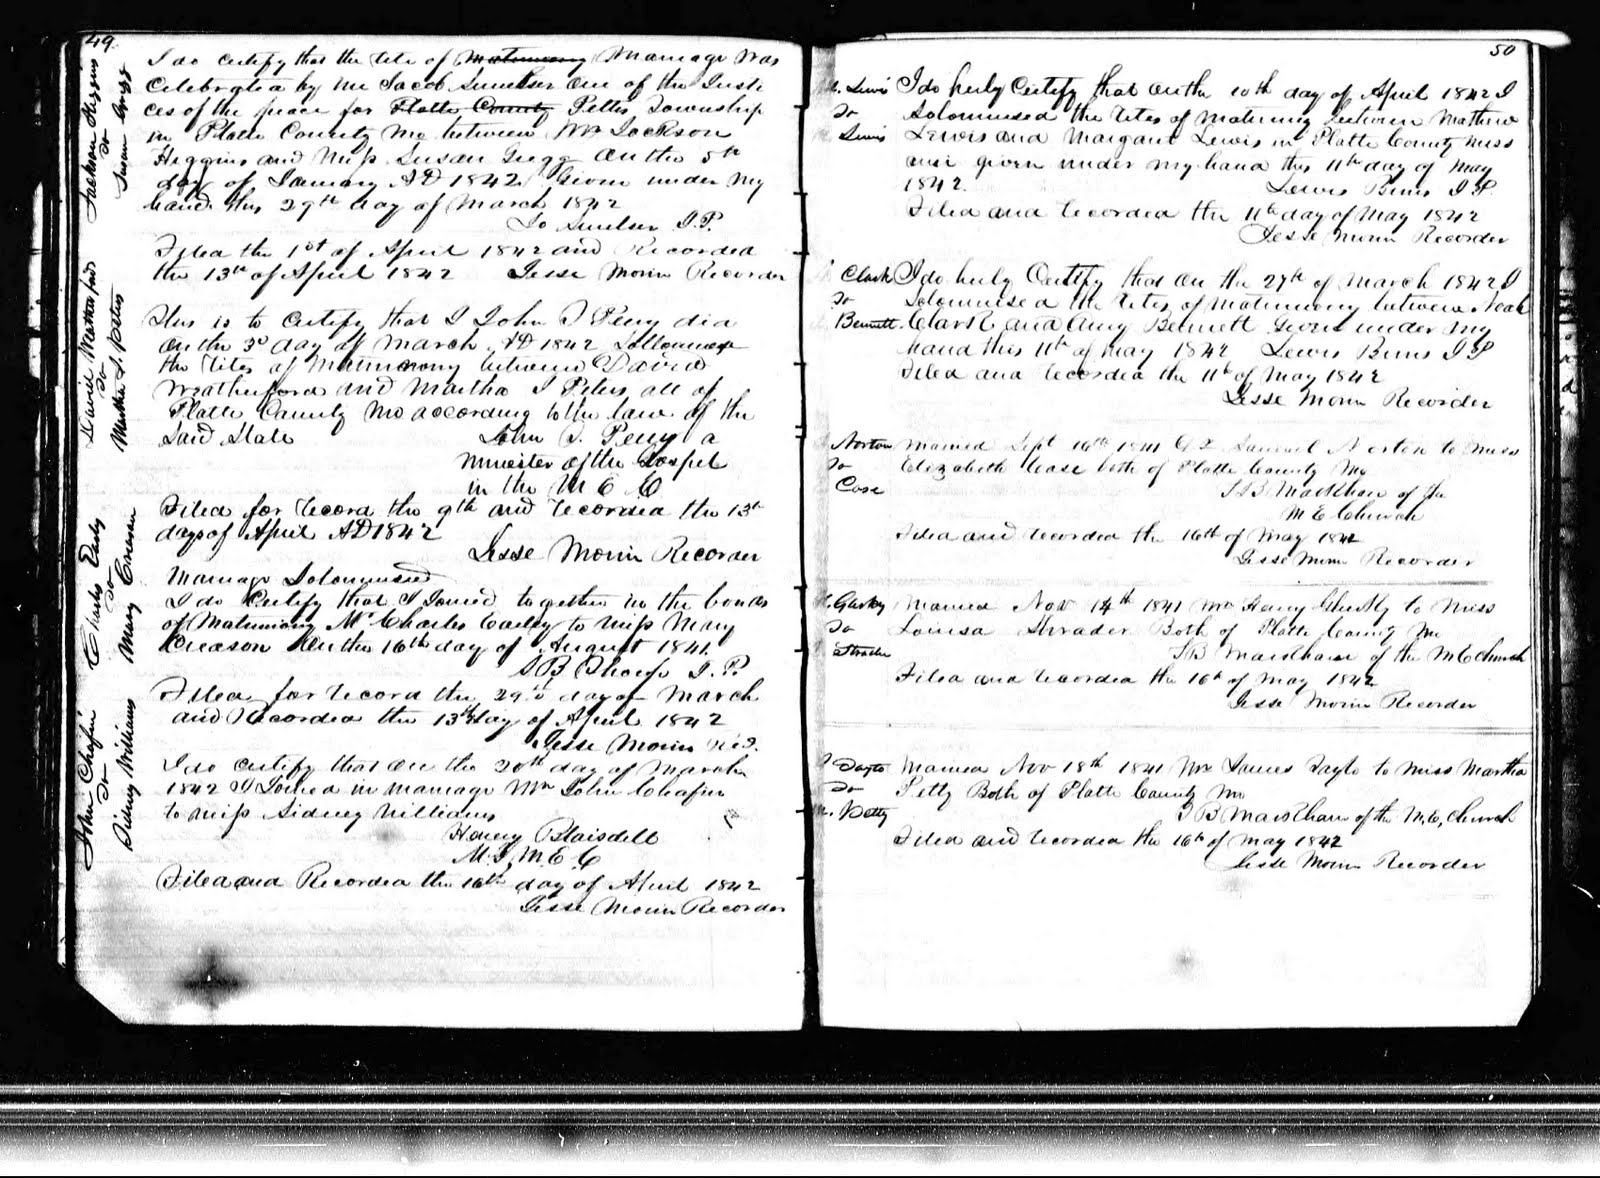 5 both these facts back margaret eliza shoemaker s statement that alexander and margaret moved to missouri before moving on to illinois